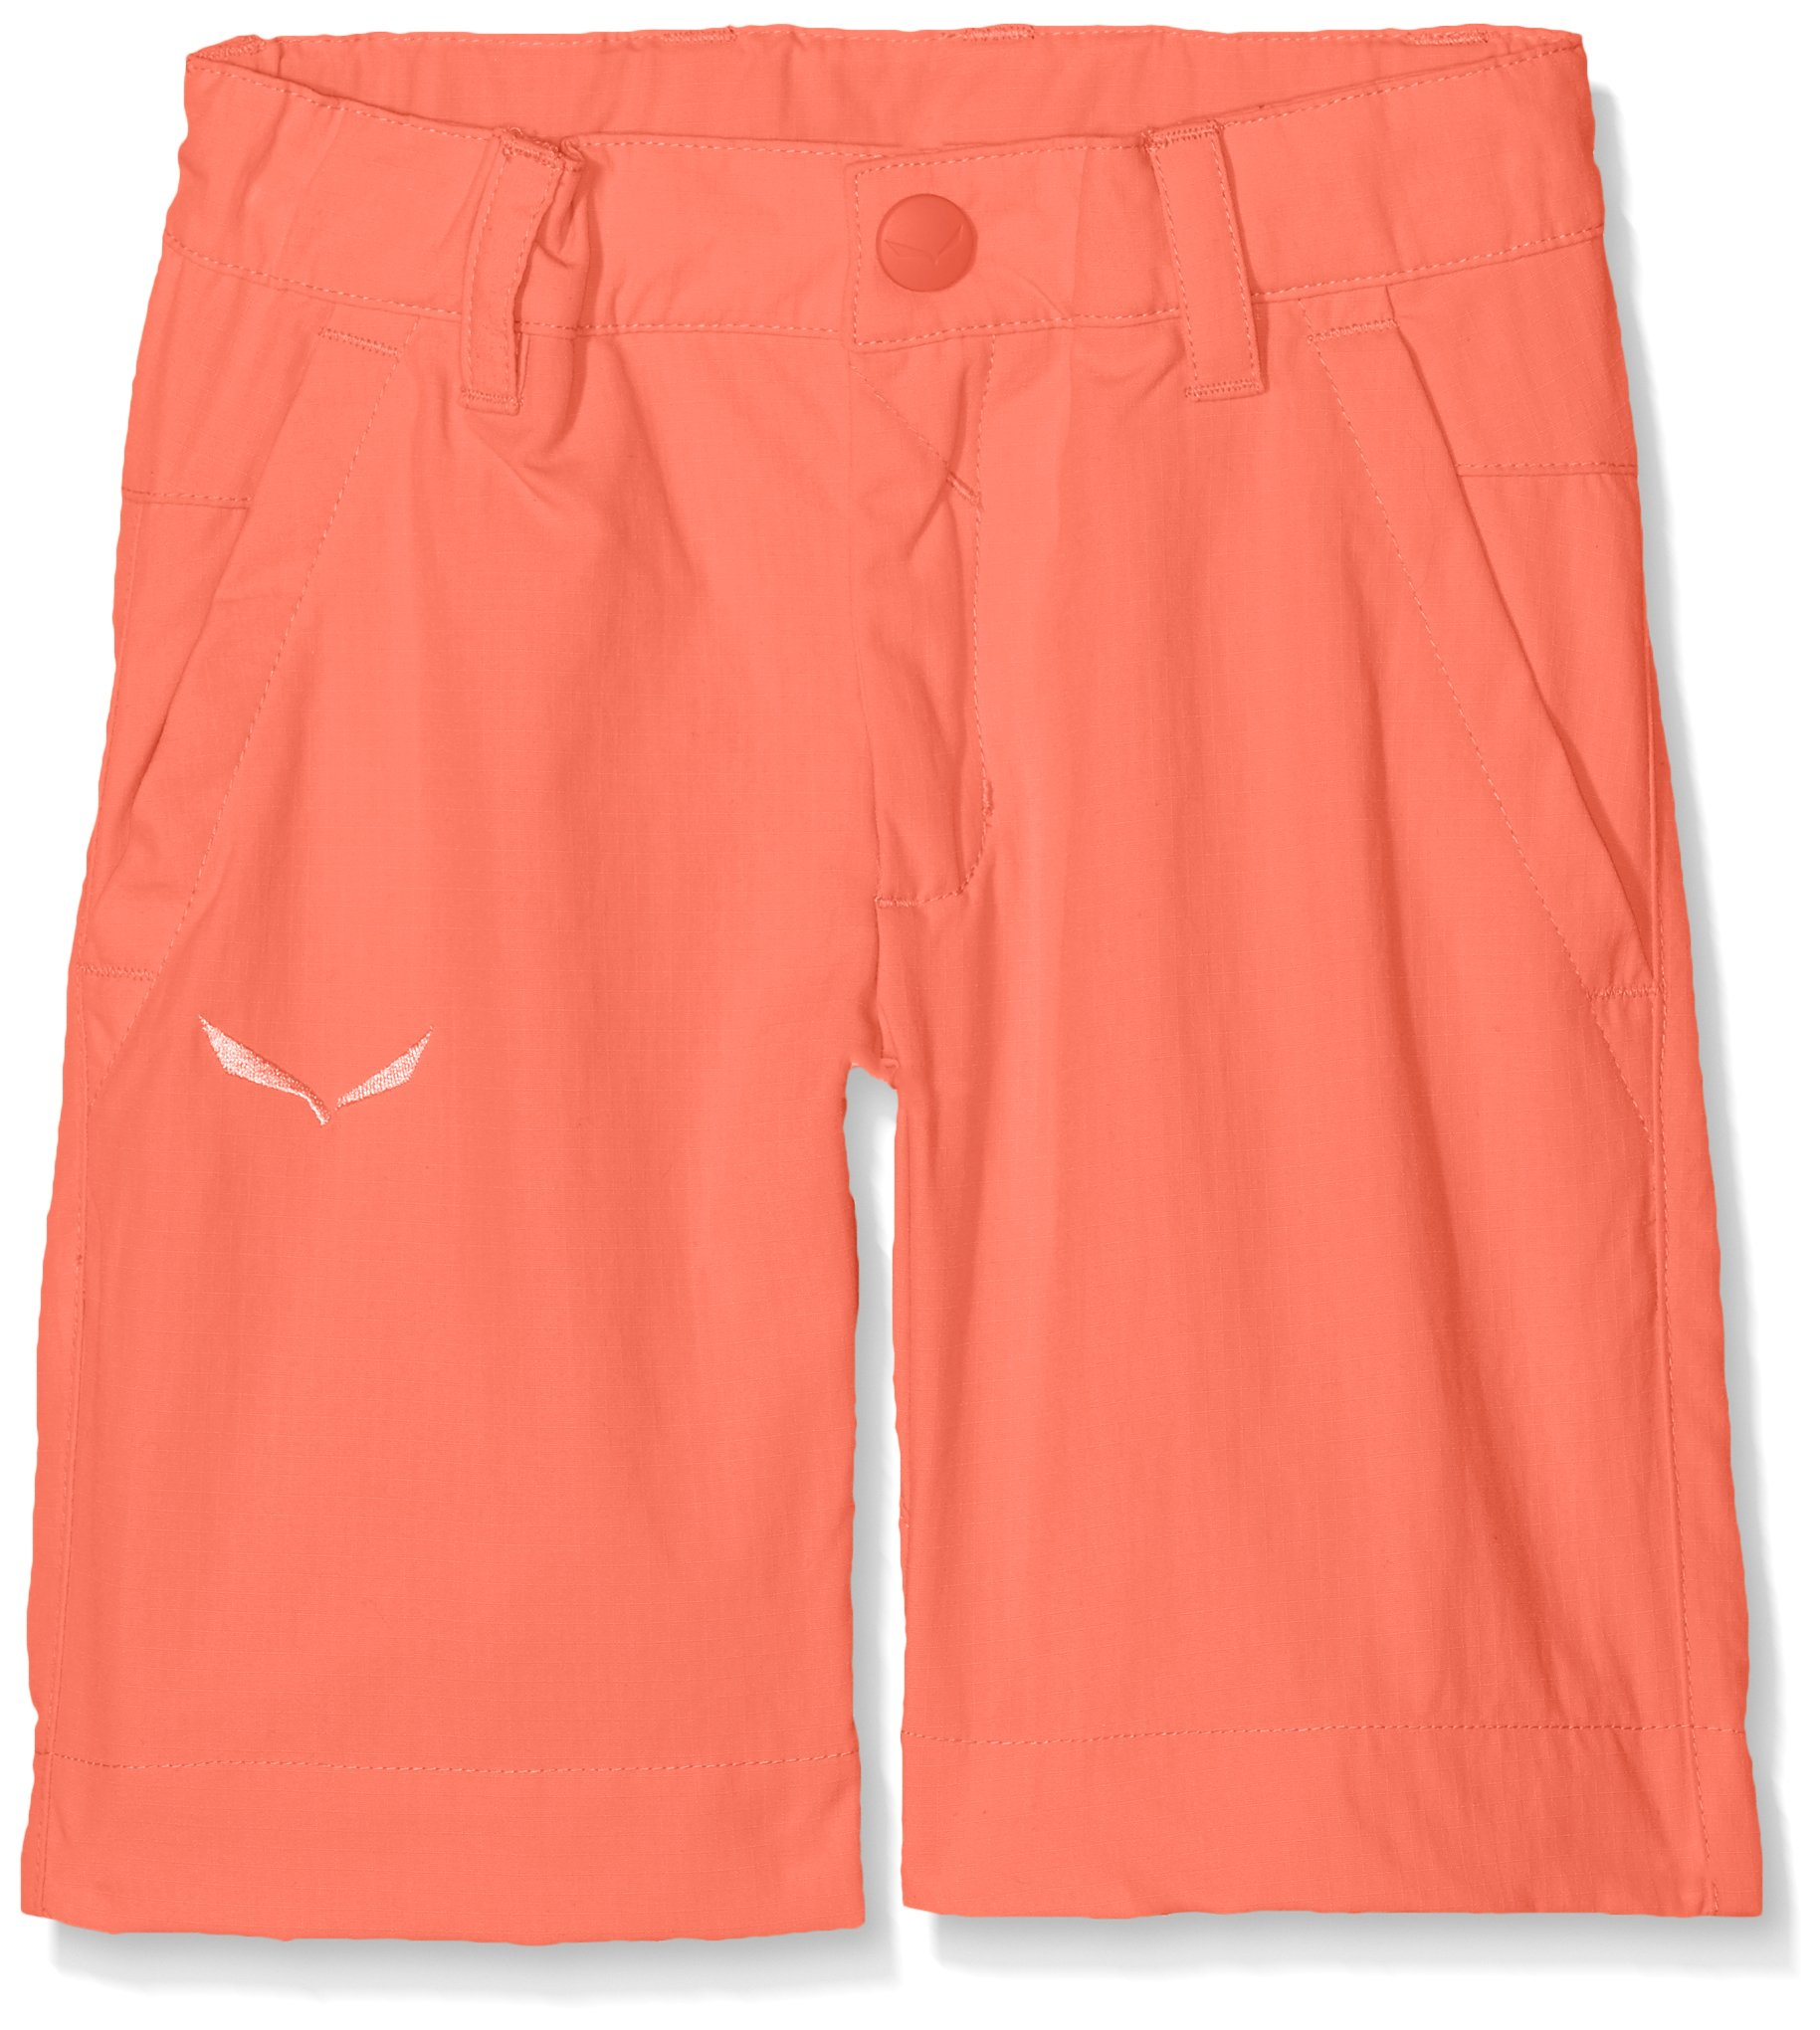 Salewa Fanes Dry K Children's Unisex Hiking Shorts, Baby, Fanes Dry K, Hot Coral by Salewa